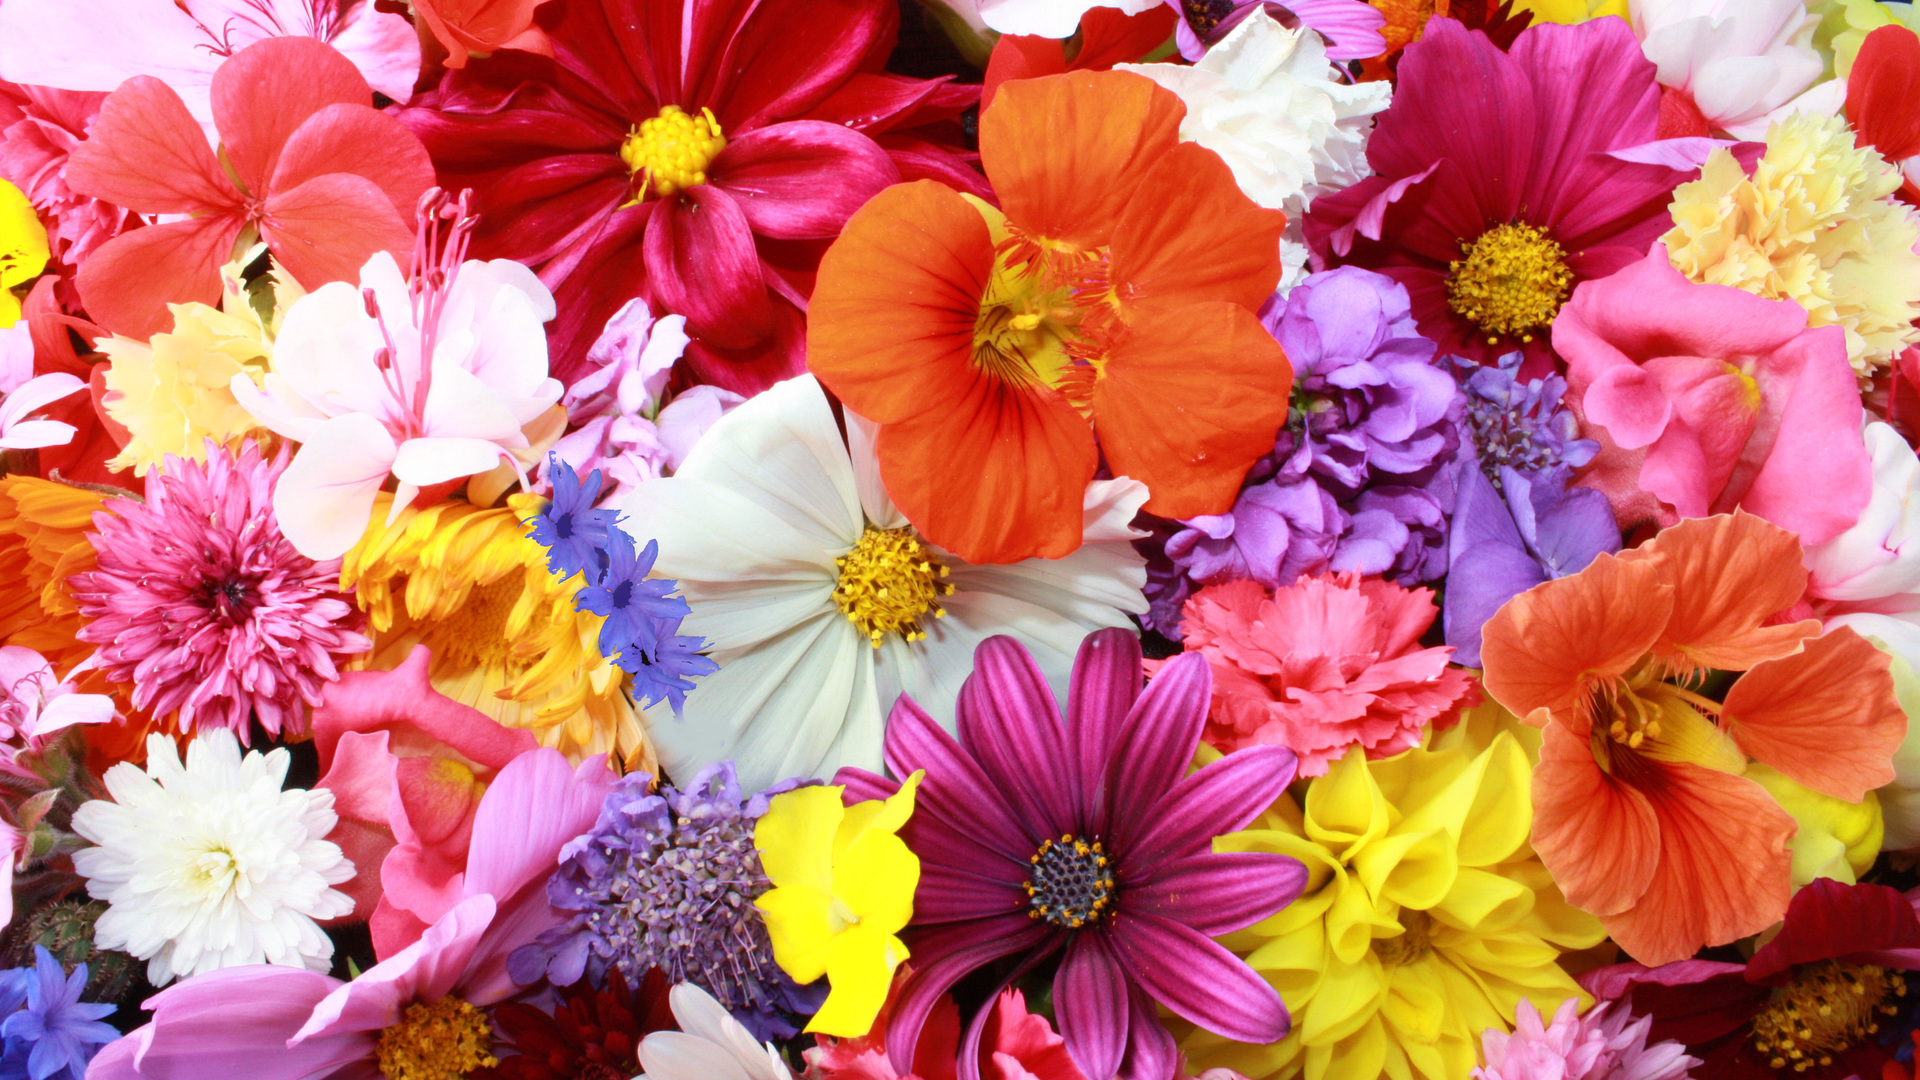 1920x1080 colorful hd flowers laptop full hd 1080p hd 4k wallpapers